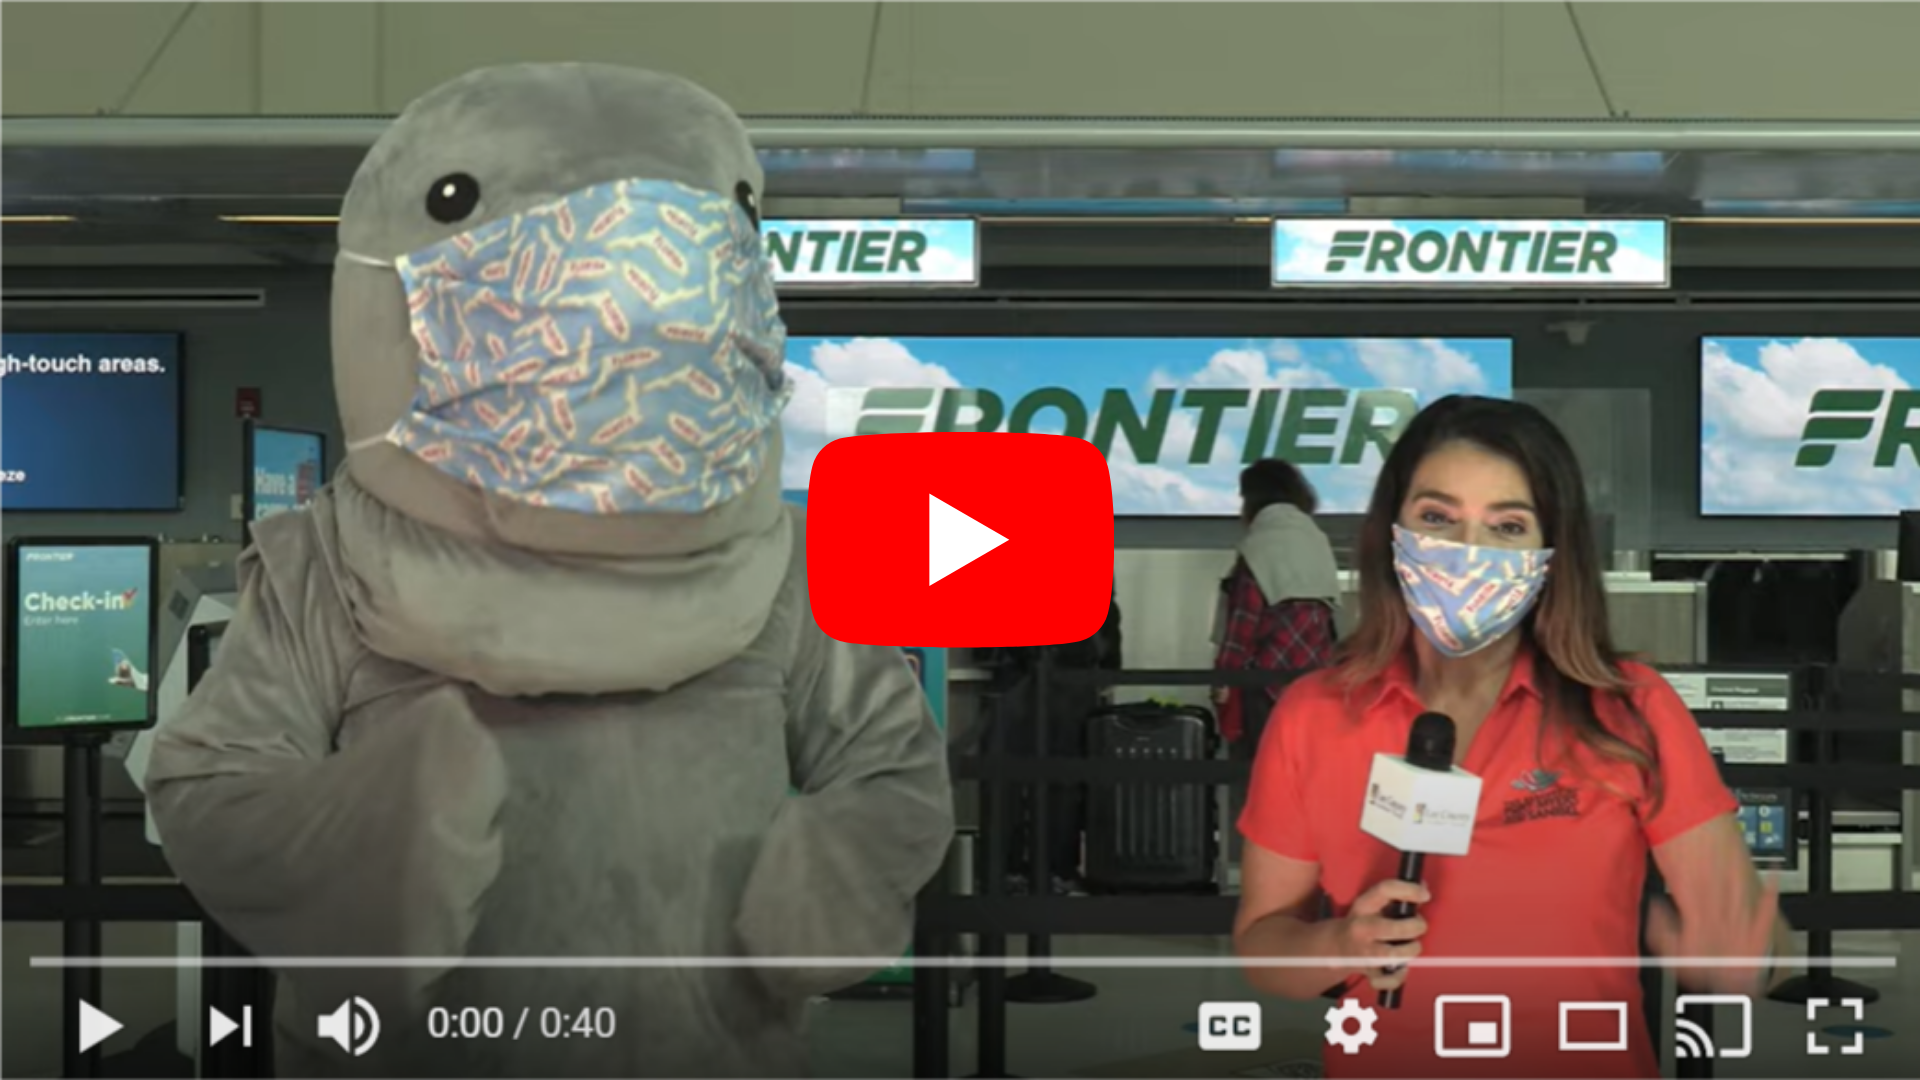 Fort Myers wins Frontier Airlines warm weather getaway contest